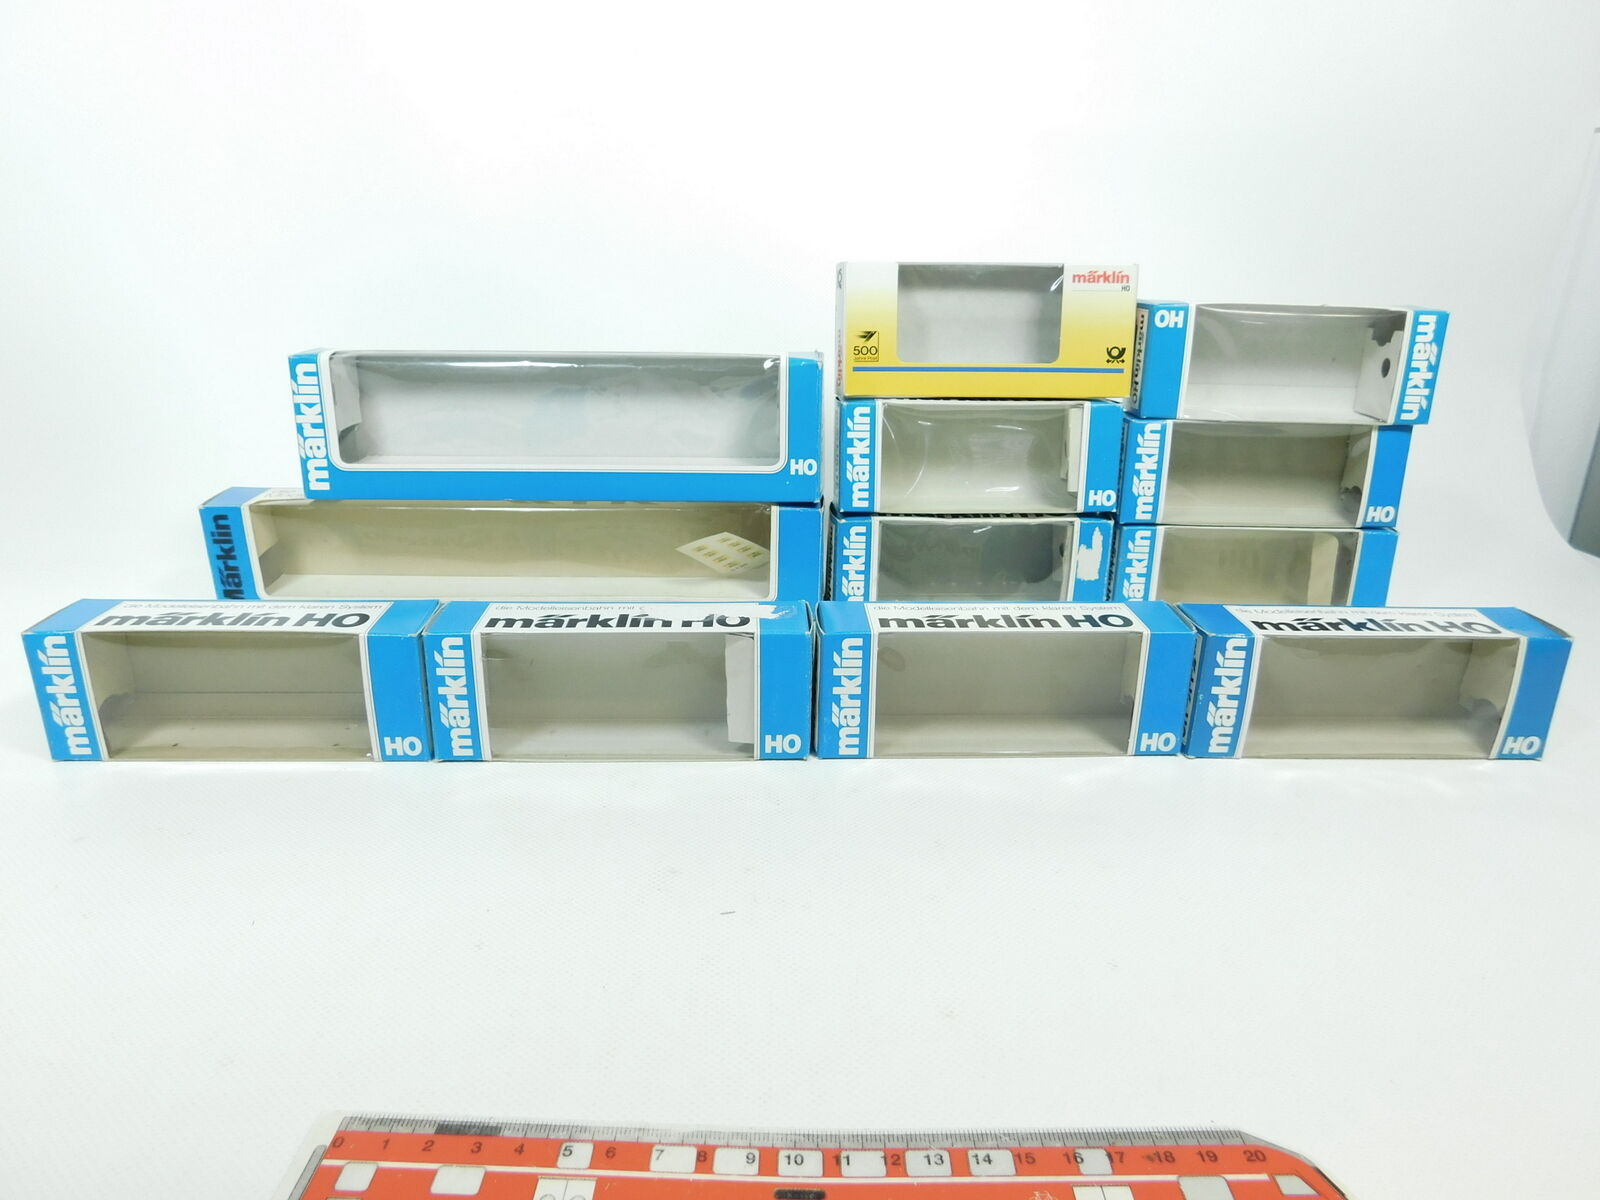 Bg897-1 x Märklin H0 Empty Box  84560 +4433+4533 +4536 +4429+4423+4096 etc.